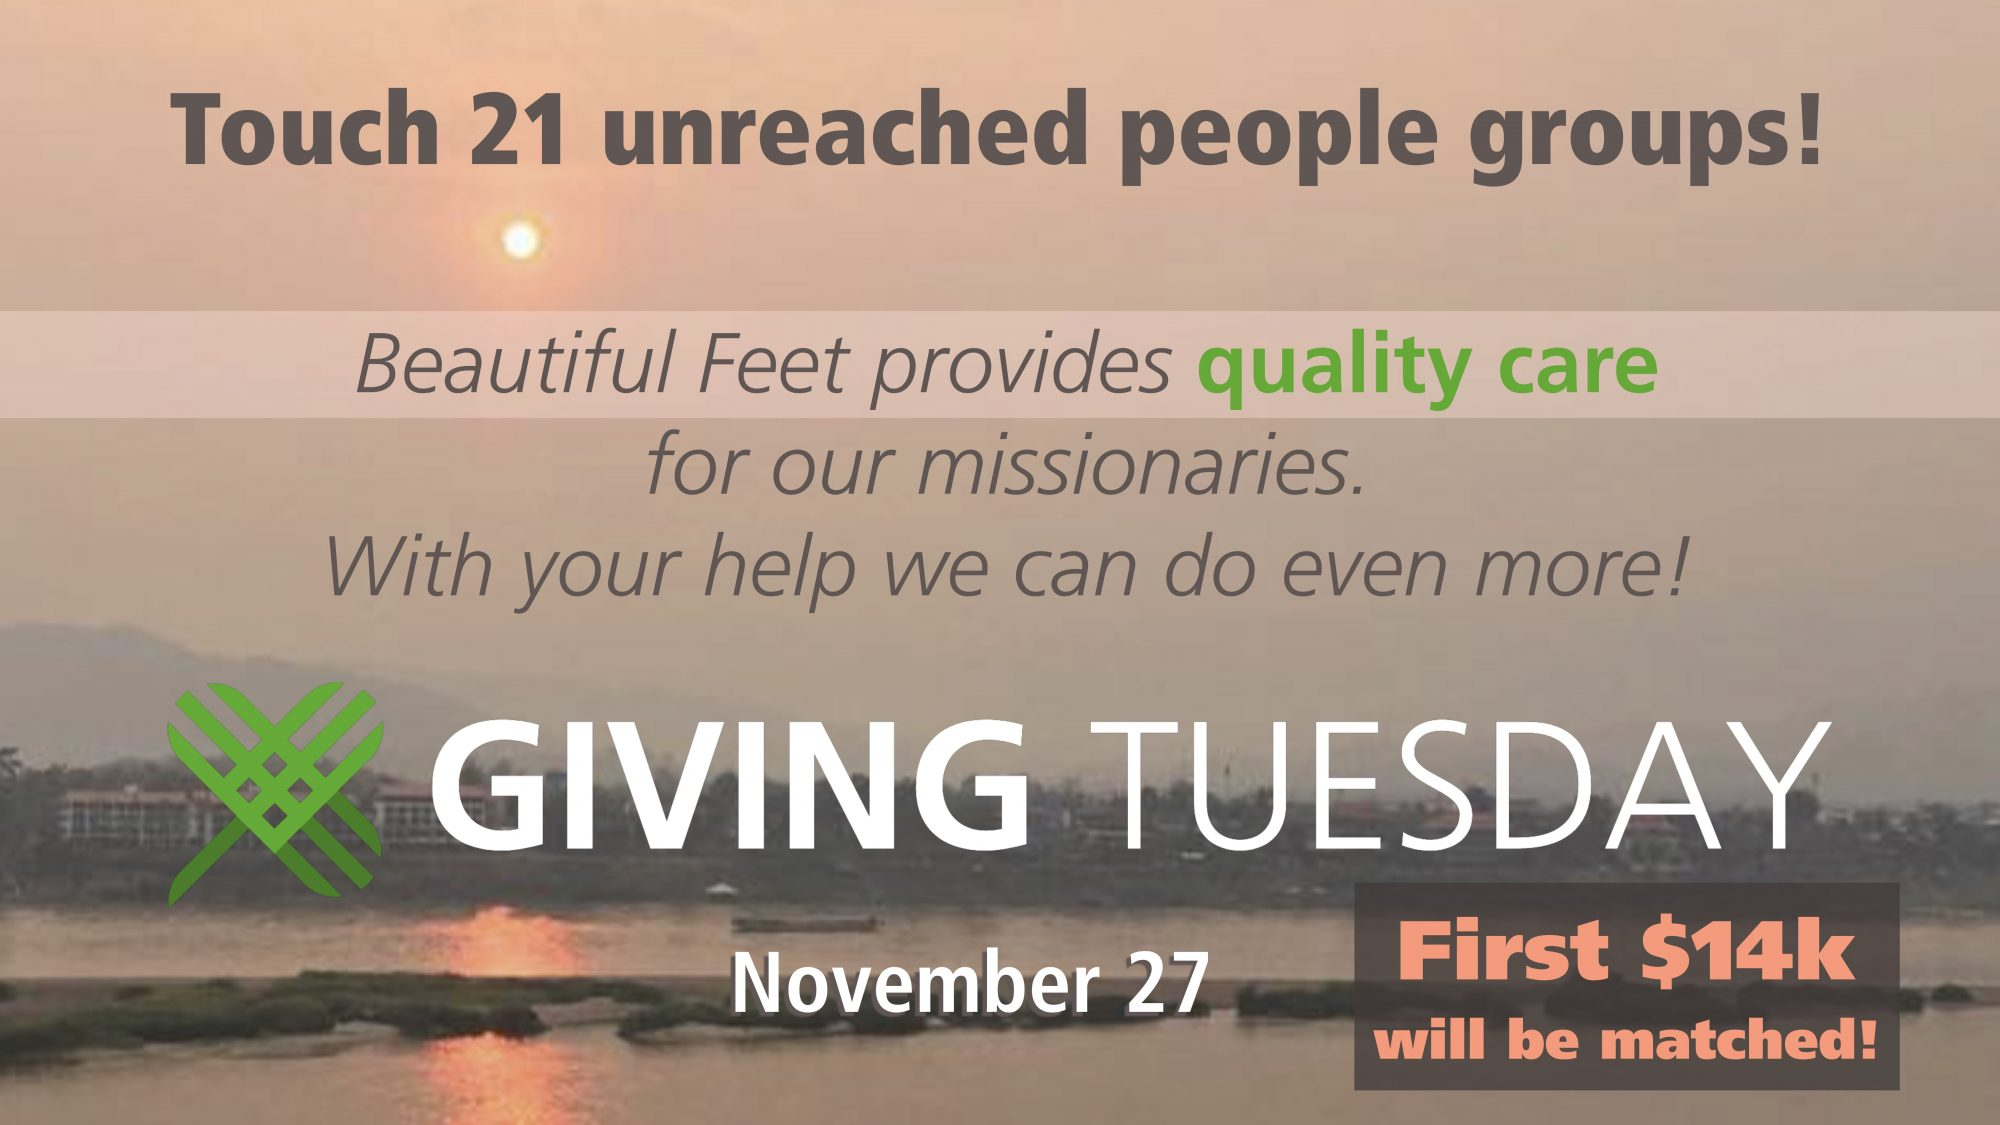 Touch 21 unreached people groups! Beautiful Feet provides quality care for our missionaries. With your help, we can do even more! Giving Tuesday November 27. First $14k will be matched!